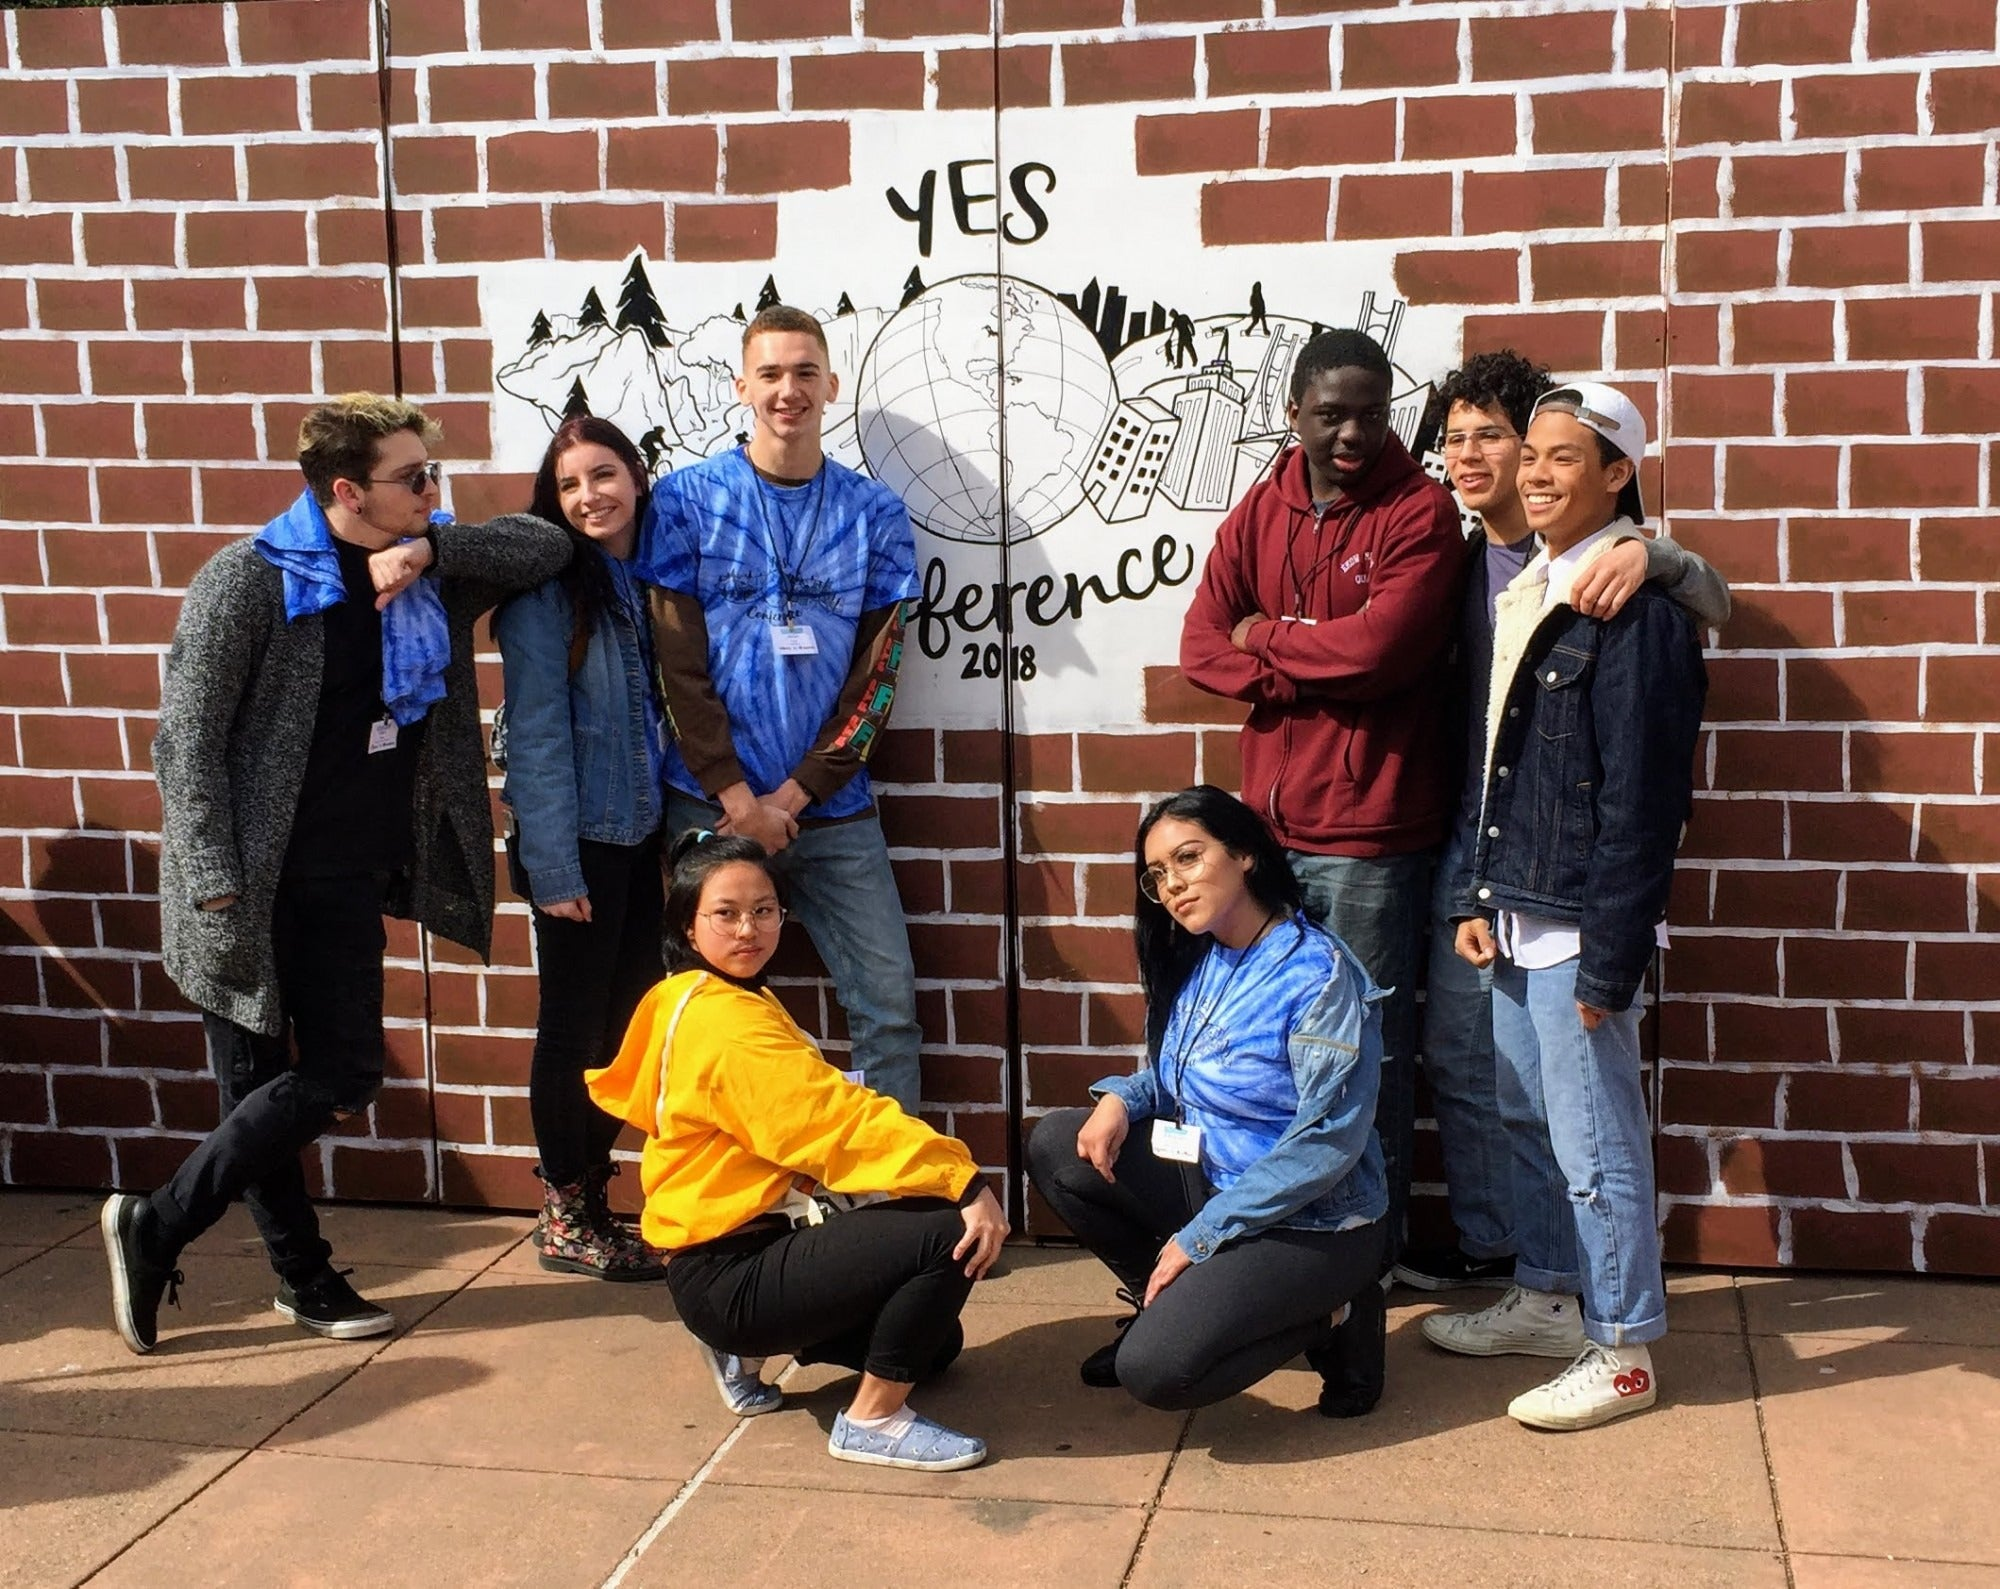 A group of 8 students pose at the 2018 YES Conference.